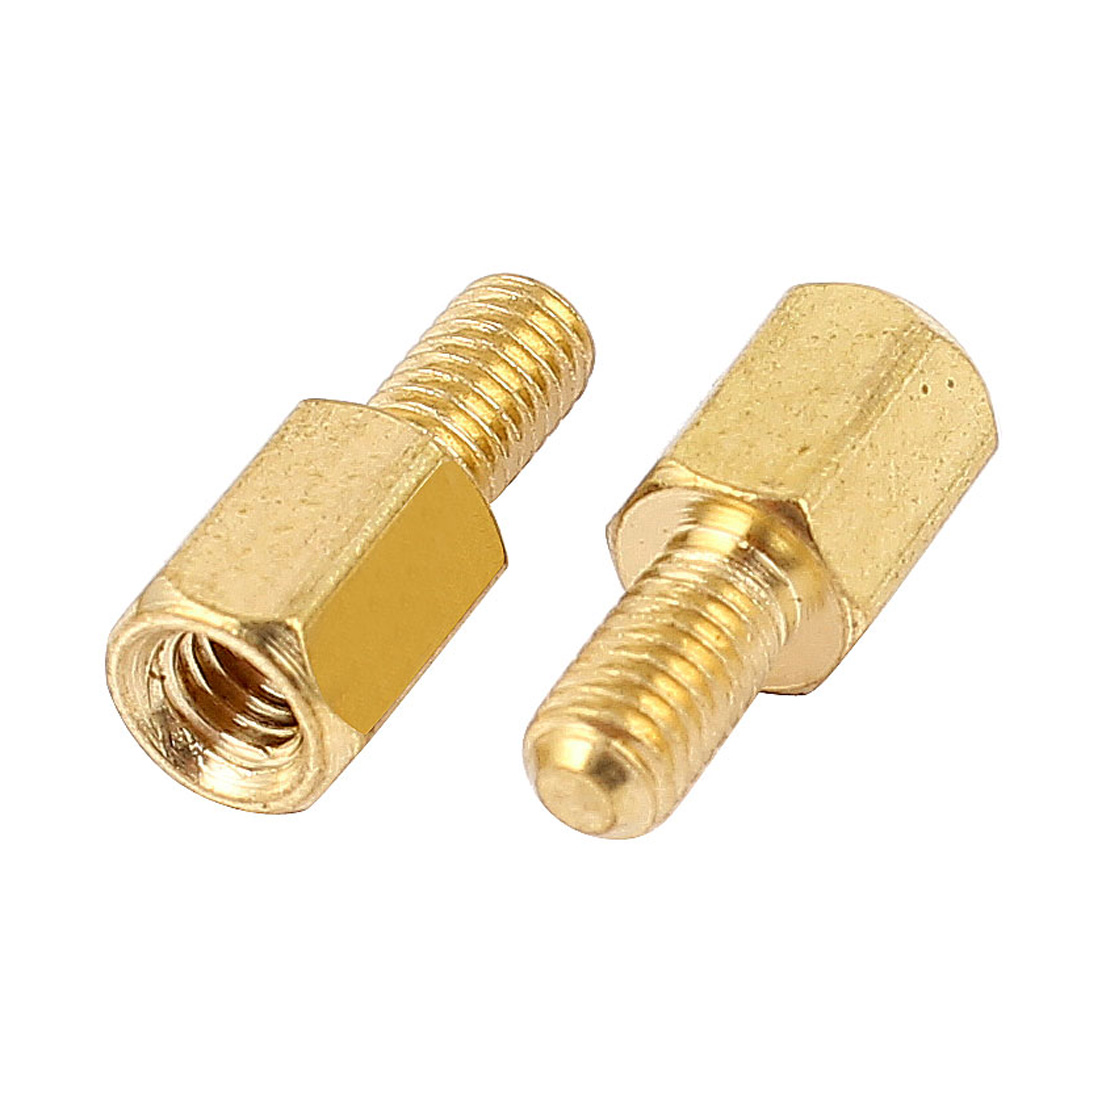 100Pcs M3 Male to Female 6mm+6mm Screw Threaded Brass Hex Standoff Spacer for PCB Motherboard